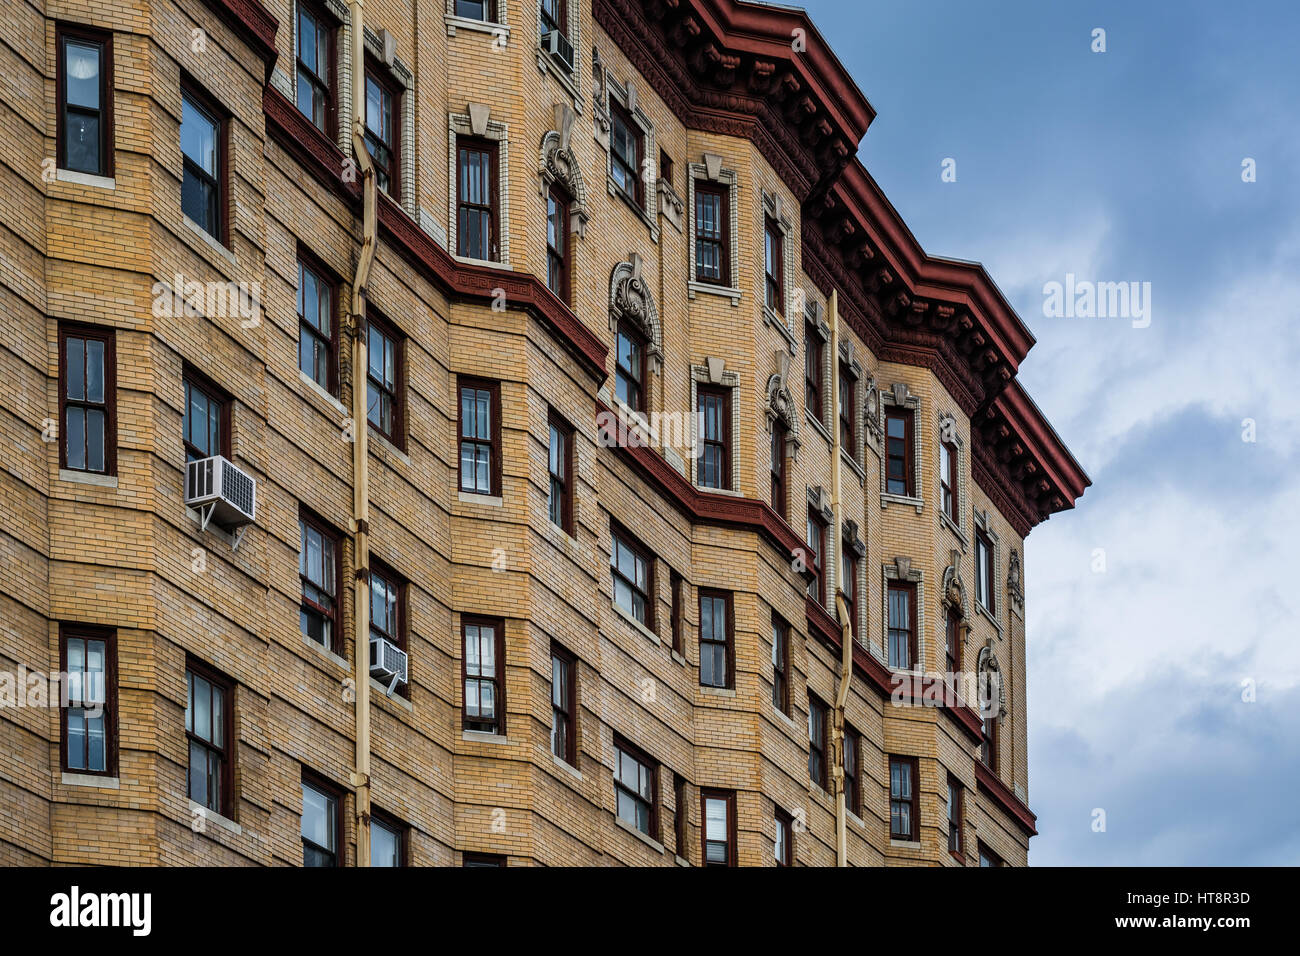 Architectural Details Of A Historic Highrise Building, In Mount Vernon,  Baltimore, Maryland.